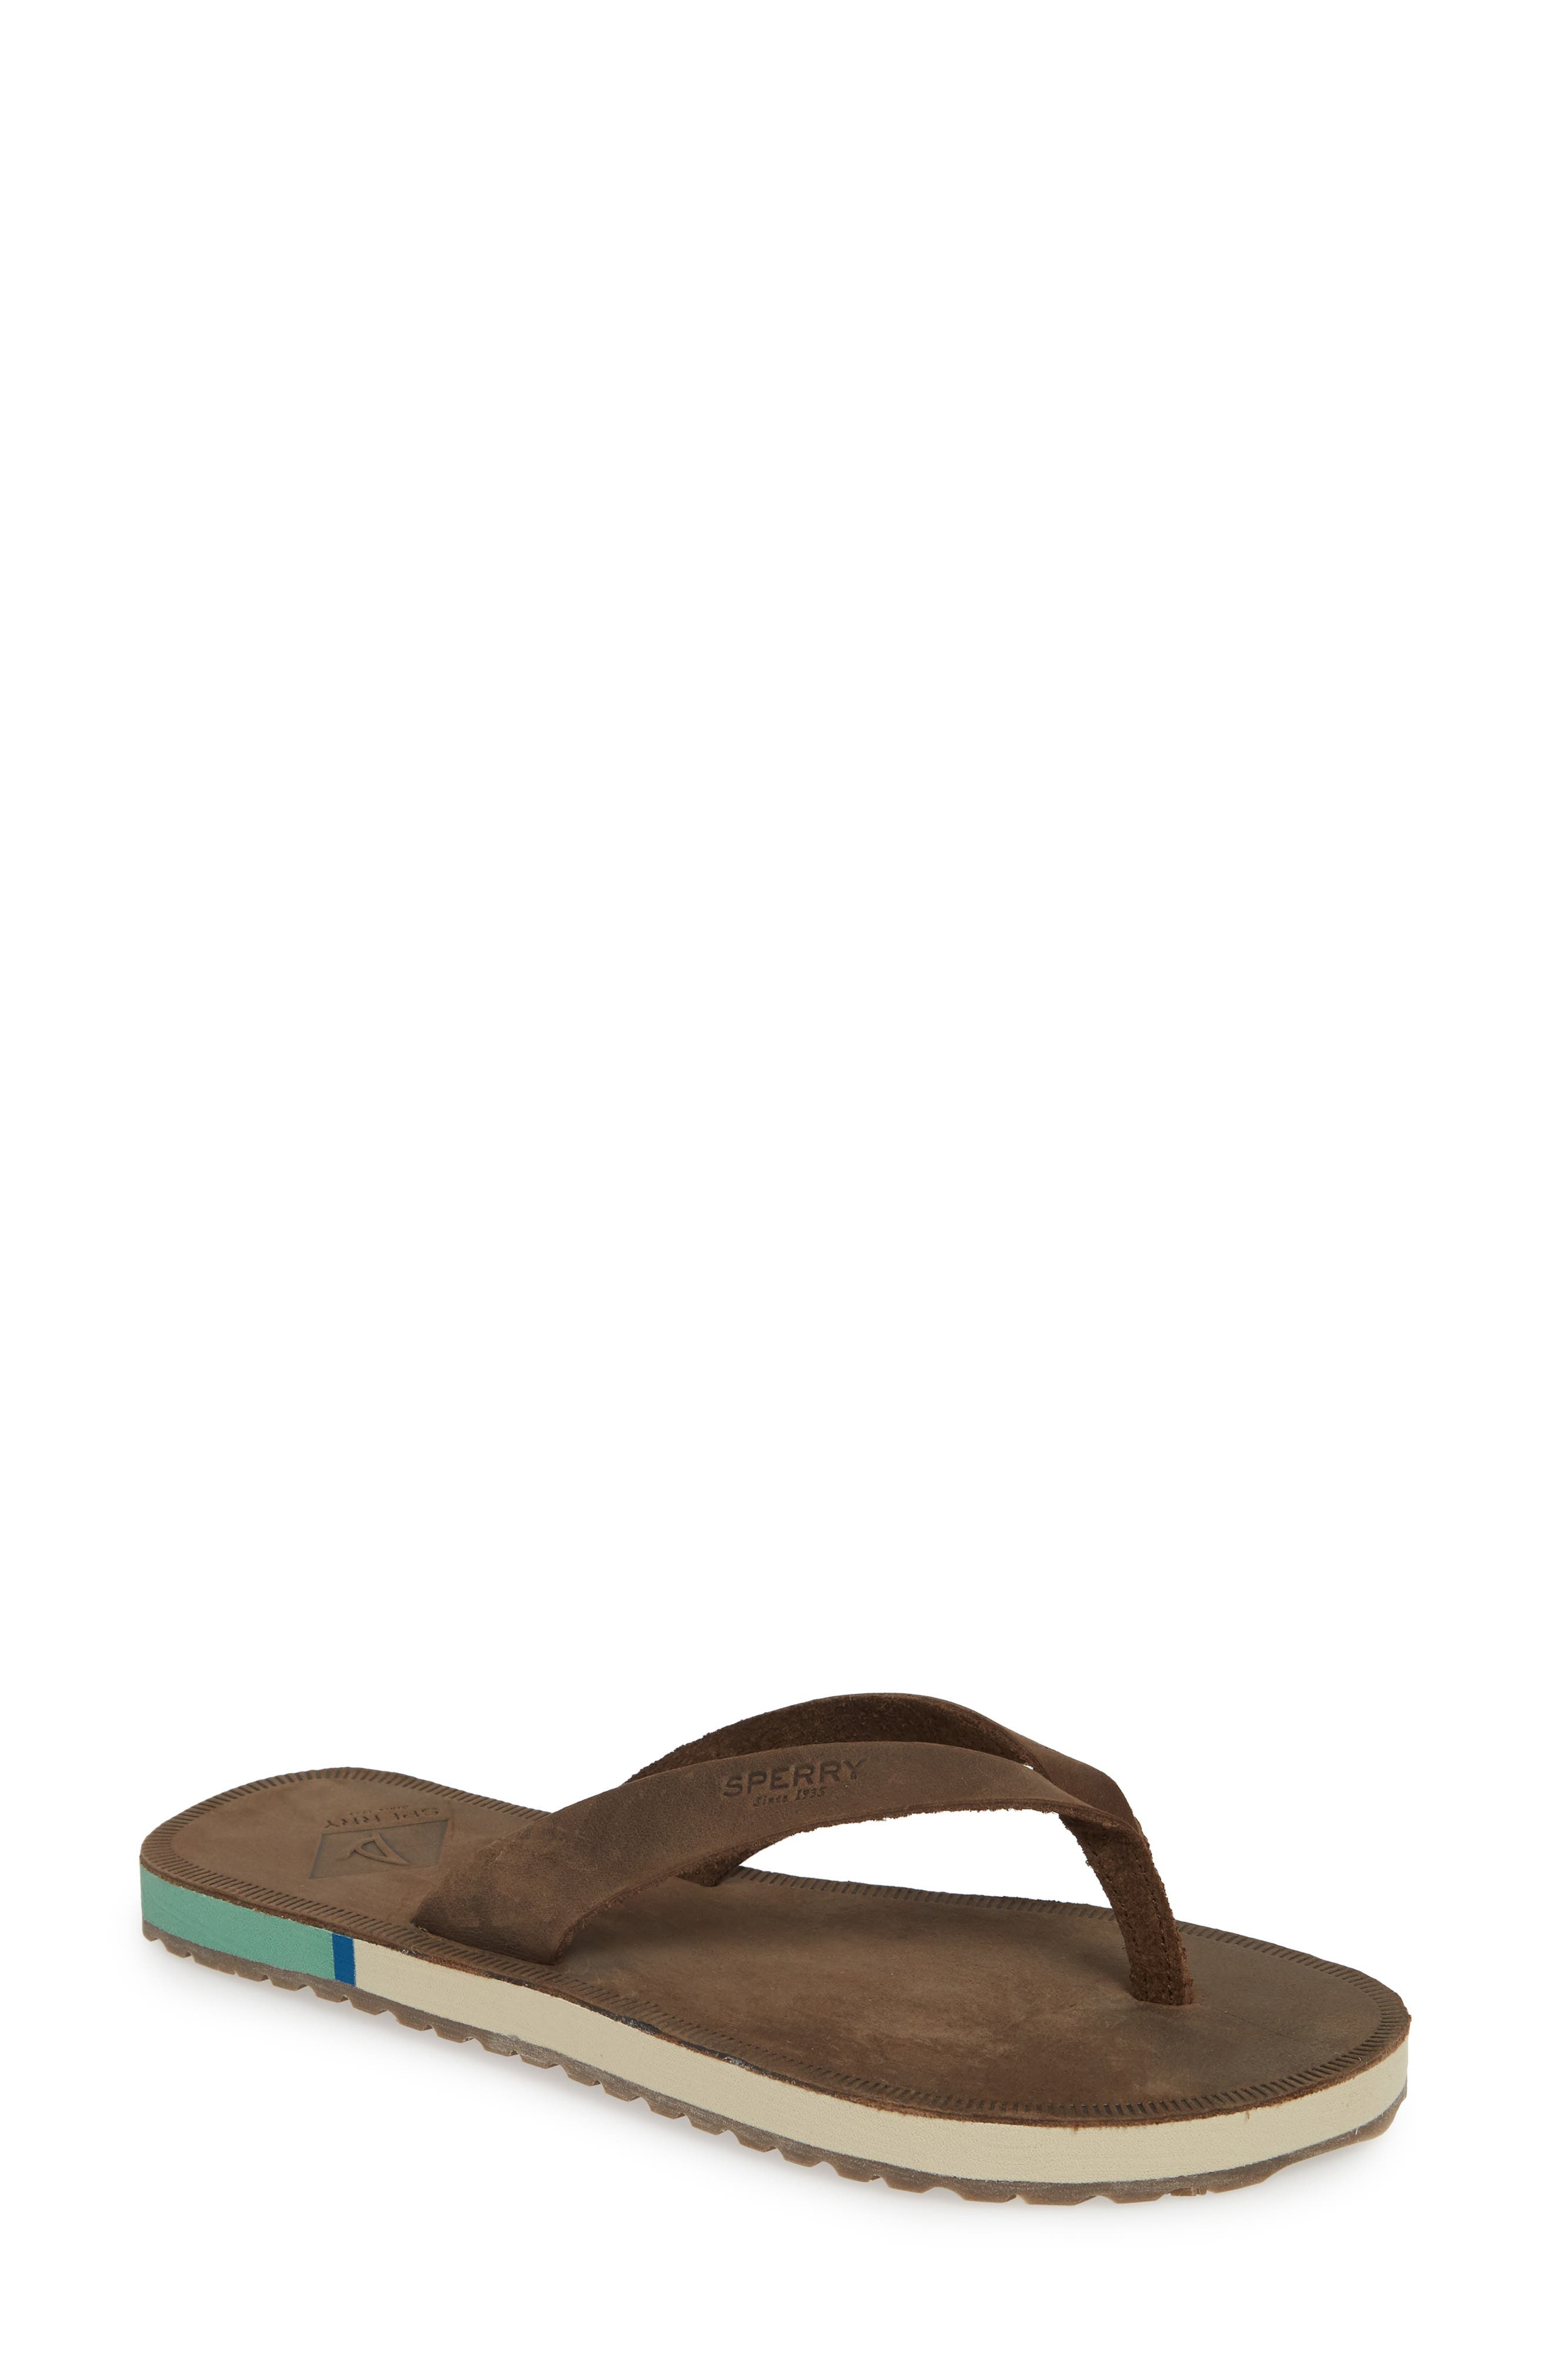 SPERRY, Wharf Flip Flop, Main thumbnail 1, color, CHOCOLATE LEATHER